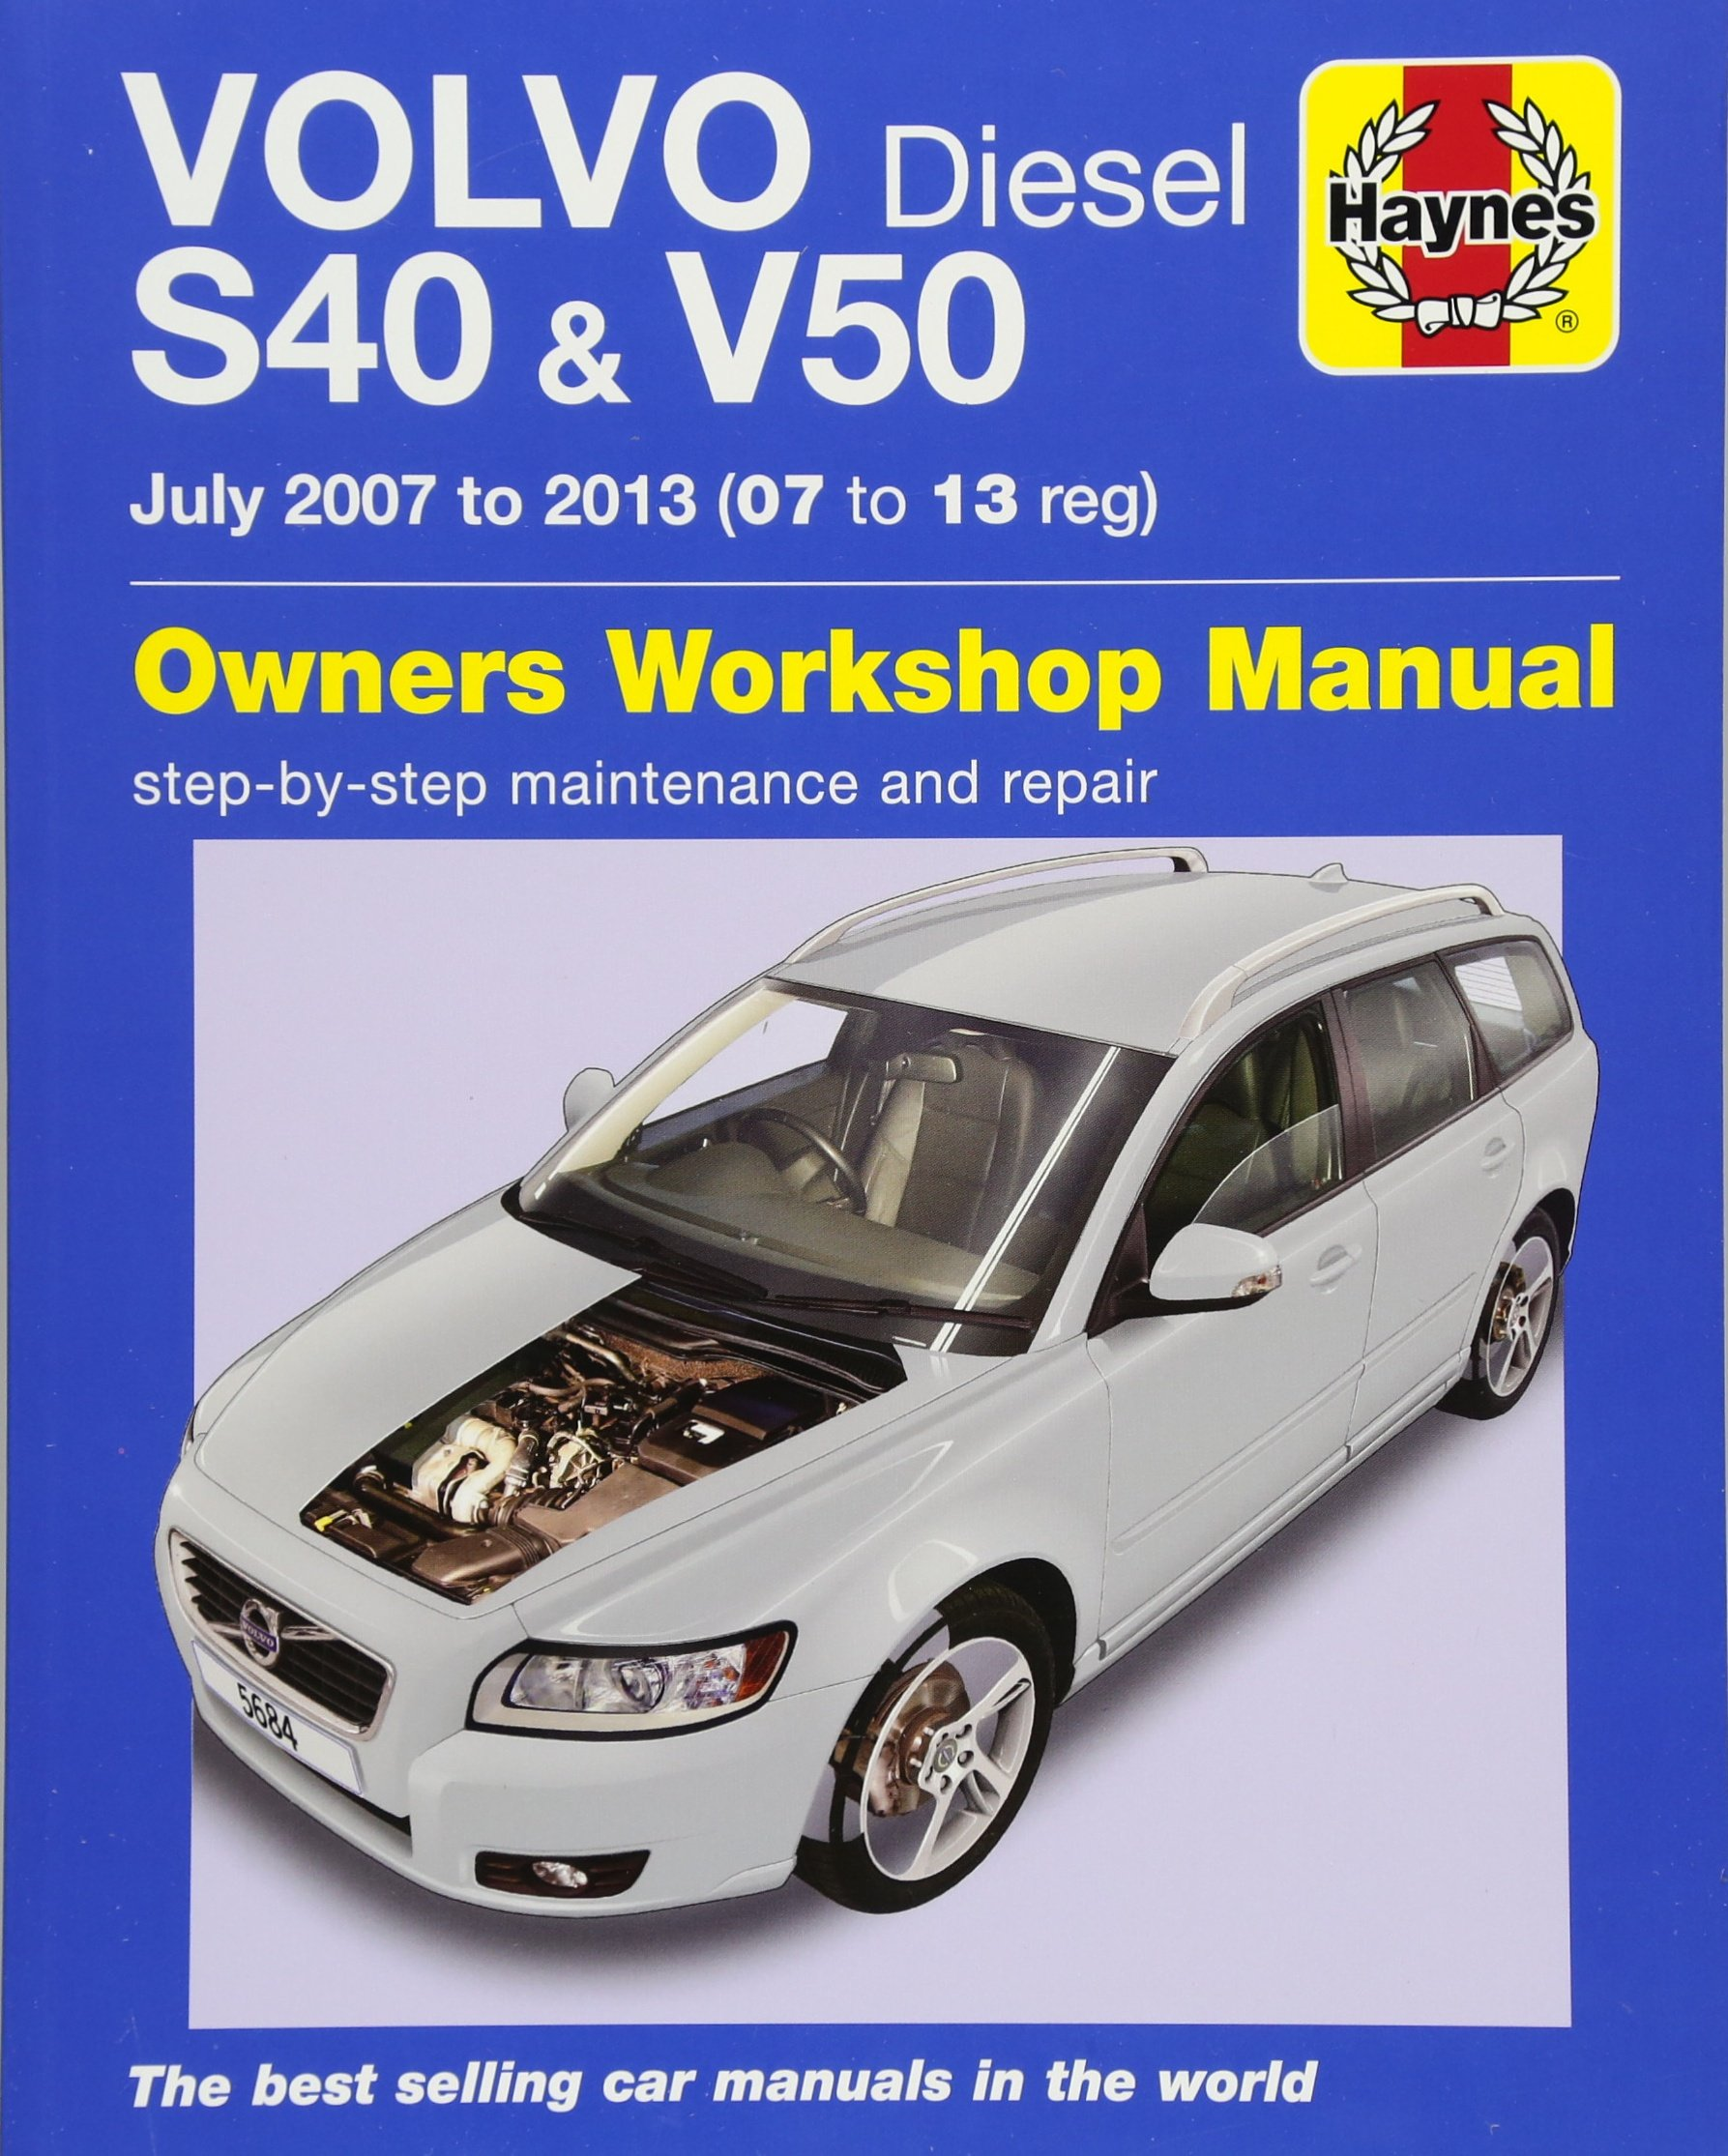 Volvo S40 & V50 Diesel Owners Workshop Manual: Amazon.es: Chris Randall: Libros en idiomas extranjeros